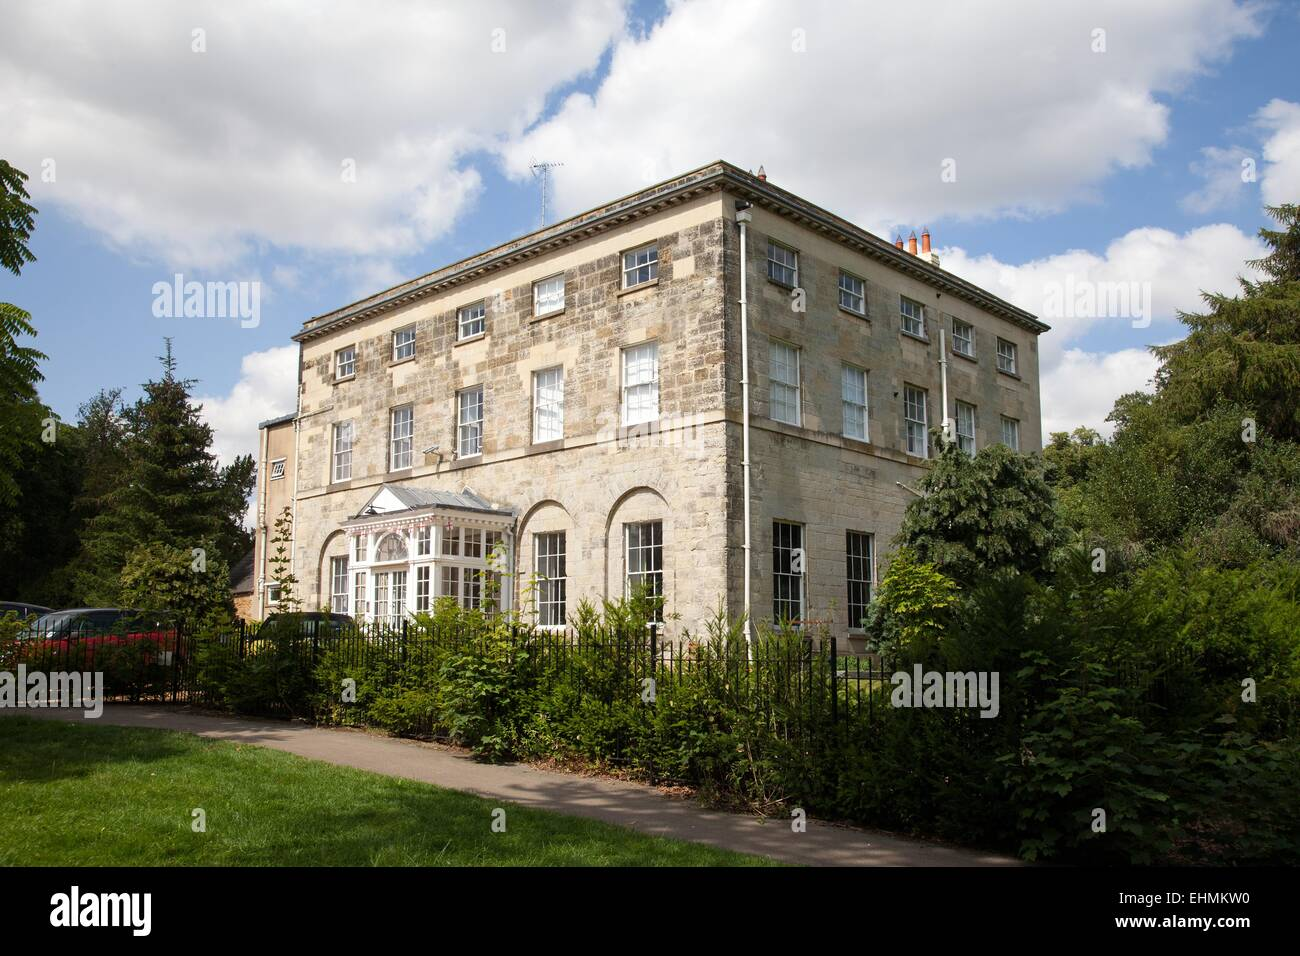 Kingsthorpe Hall, now a community centre in Kingsthorpe, Northampton - Stock Image